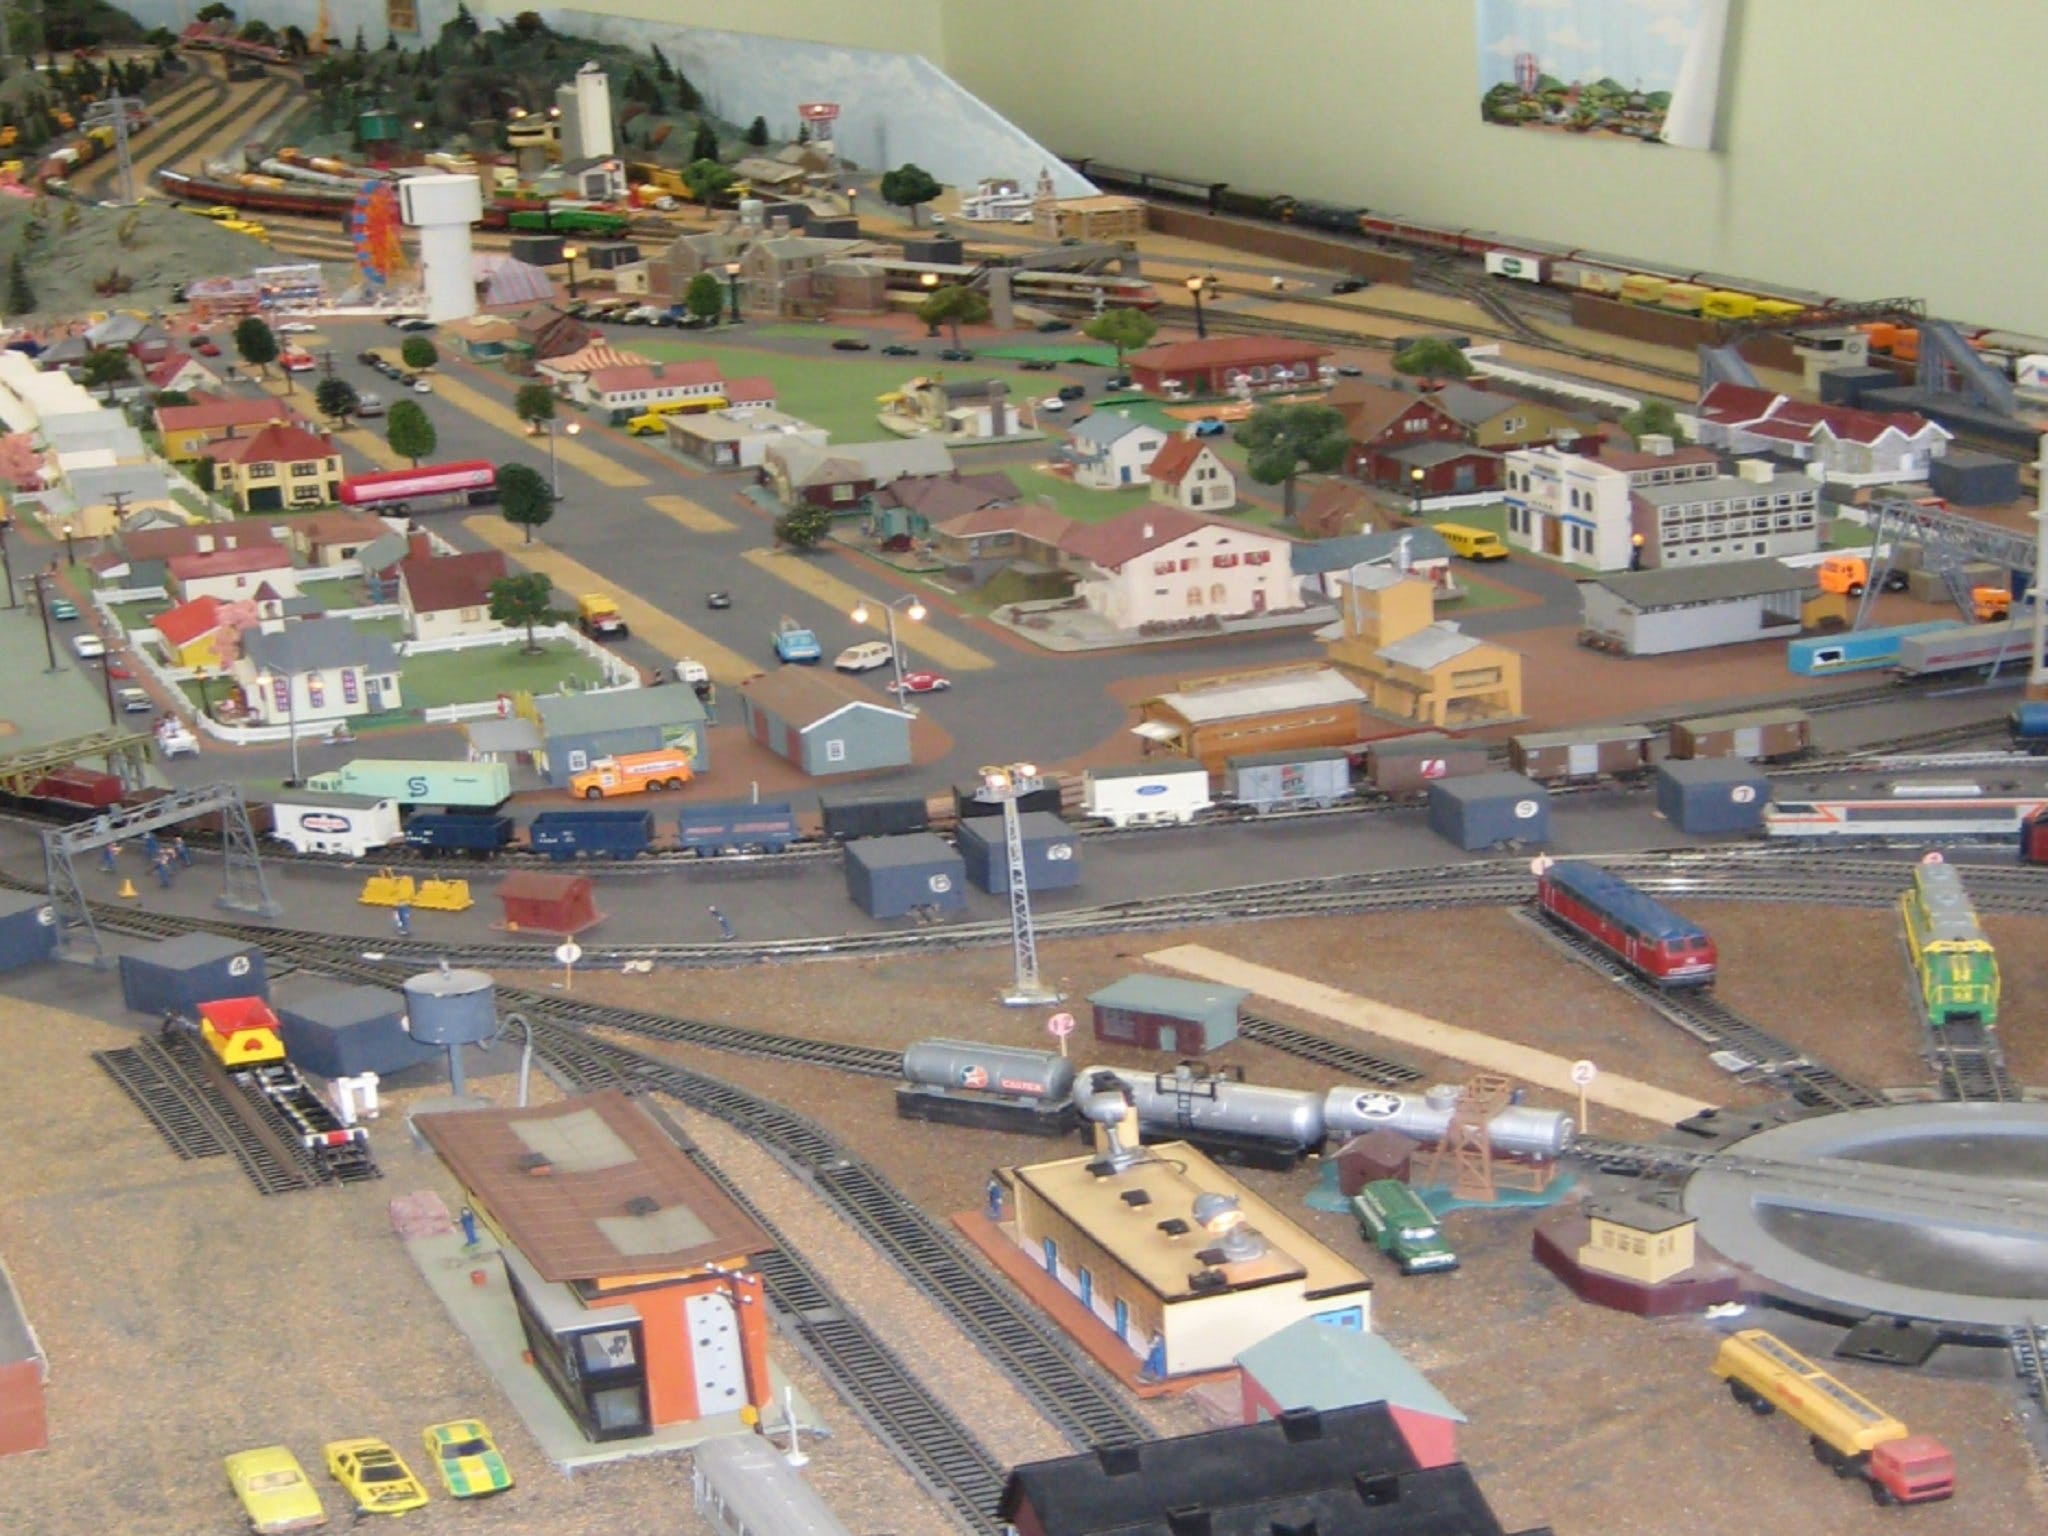 Heywood Model Trains - Accommodation Batemans Bay